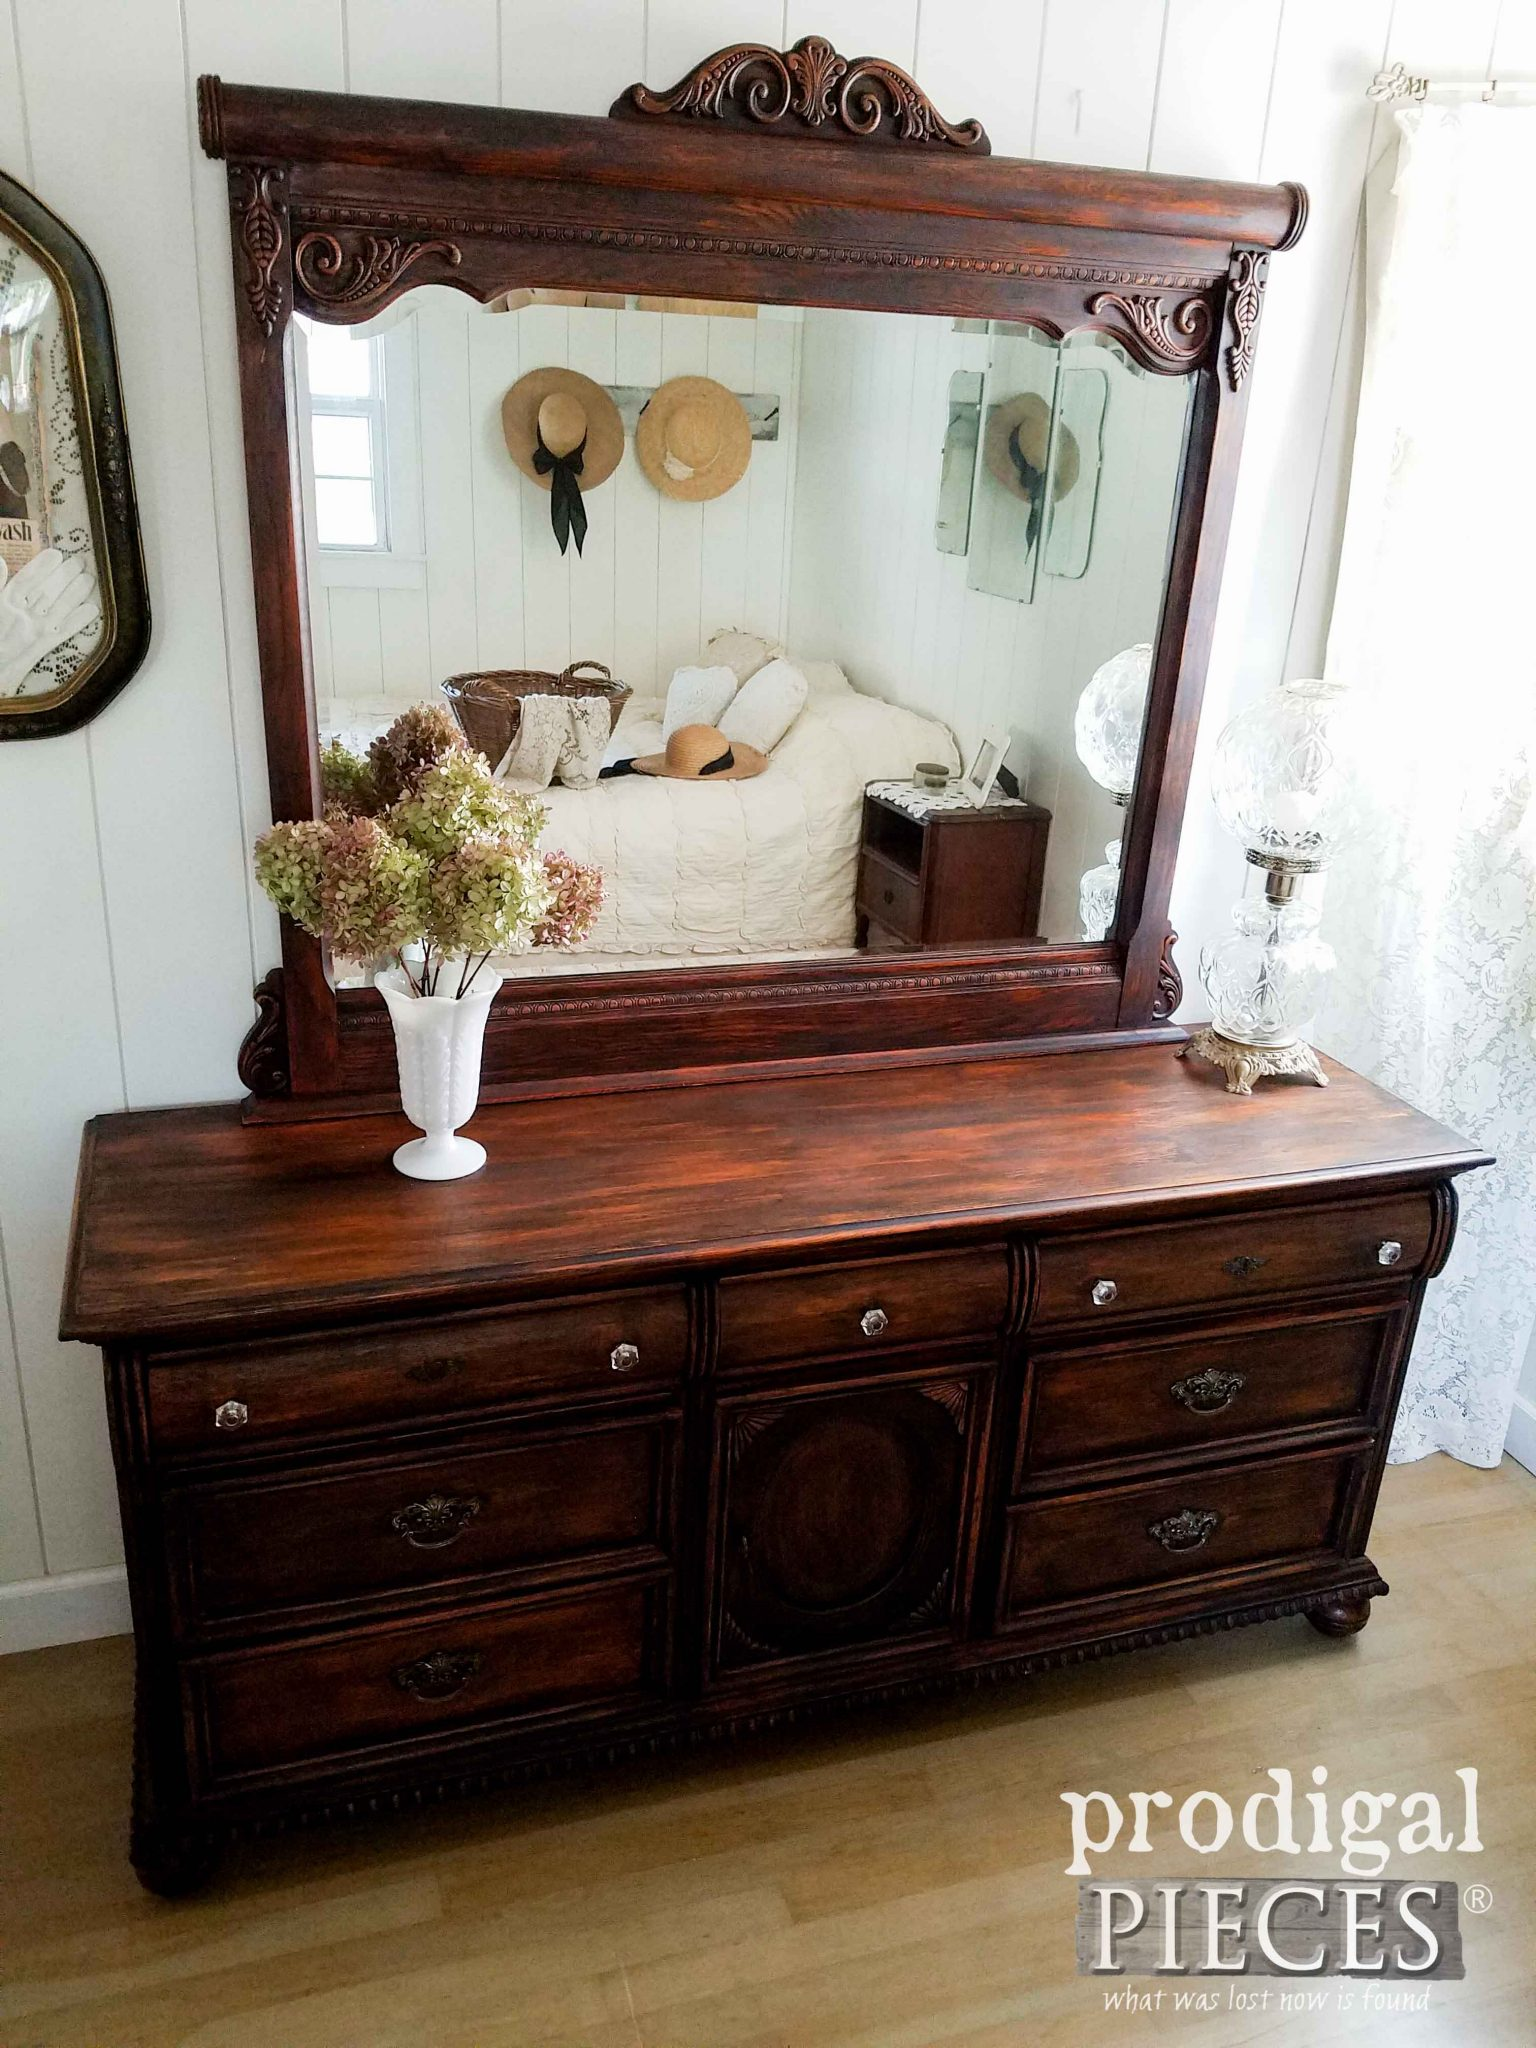 Vintage Lexington Victorian Dresser Updated by Prodigal Pieces | prodigalpieces.com